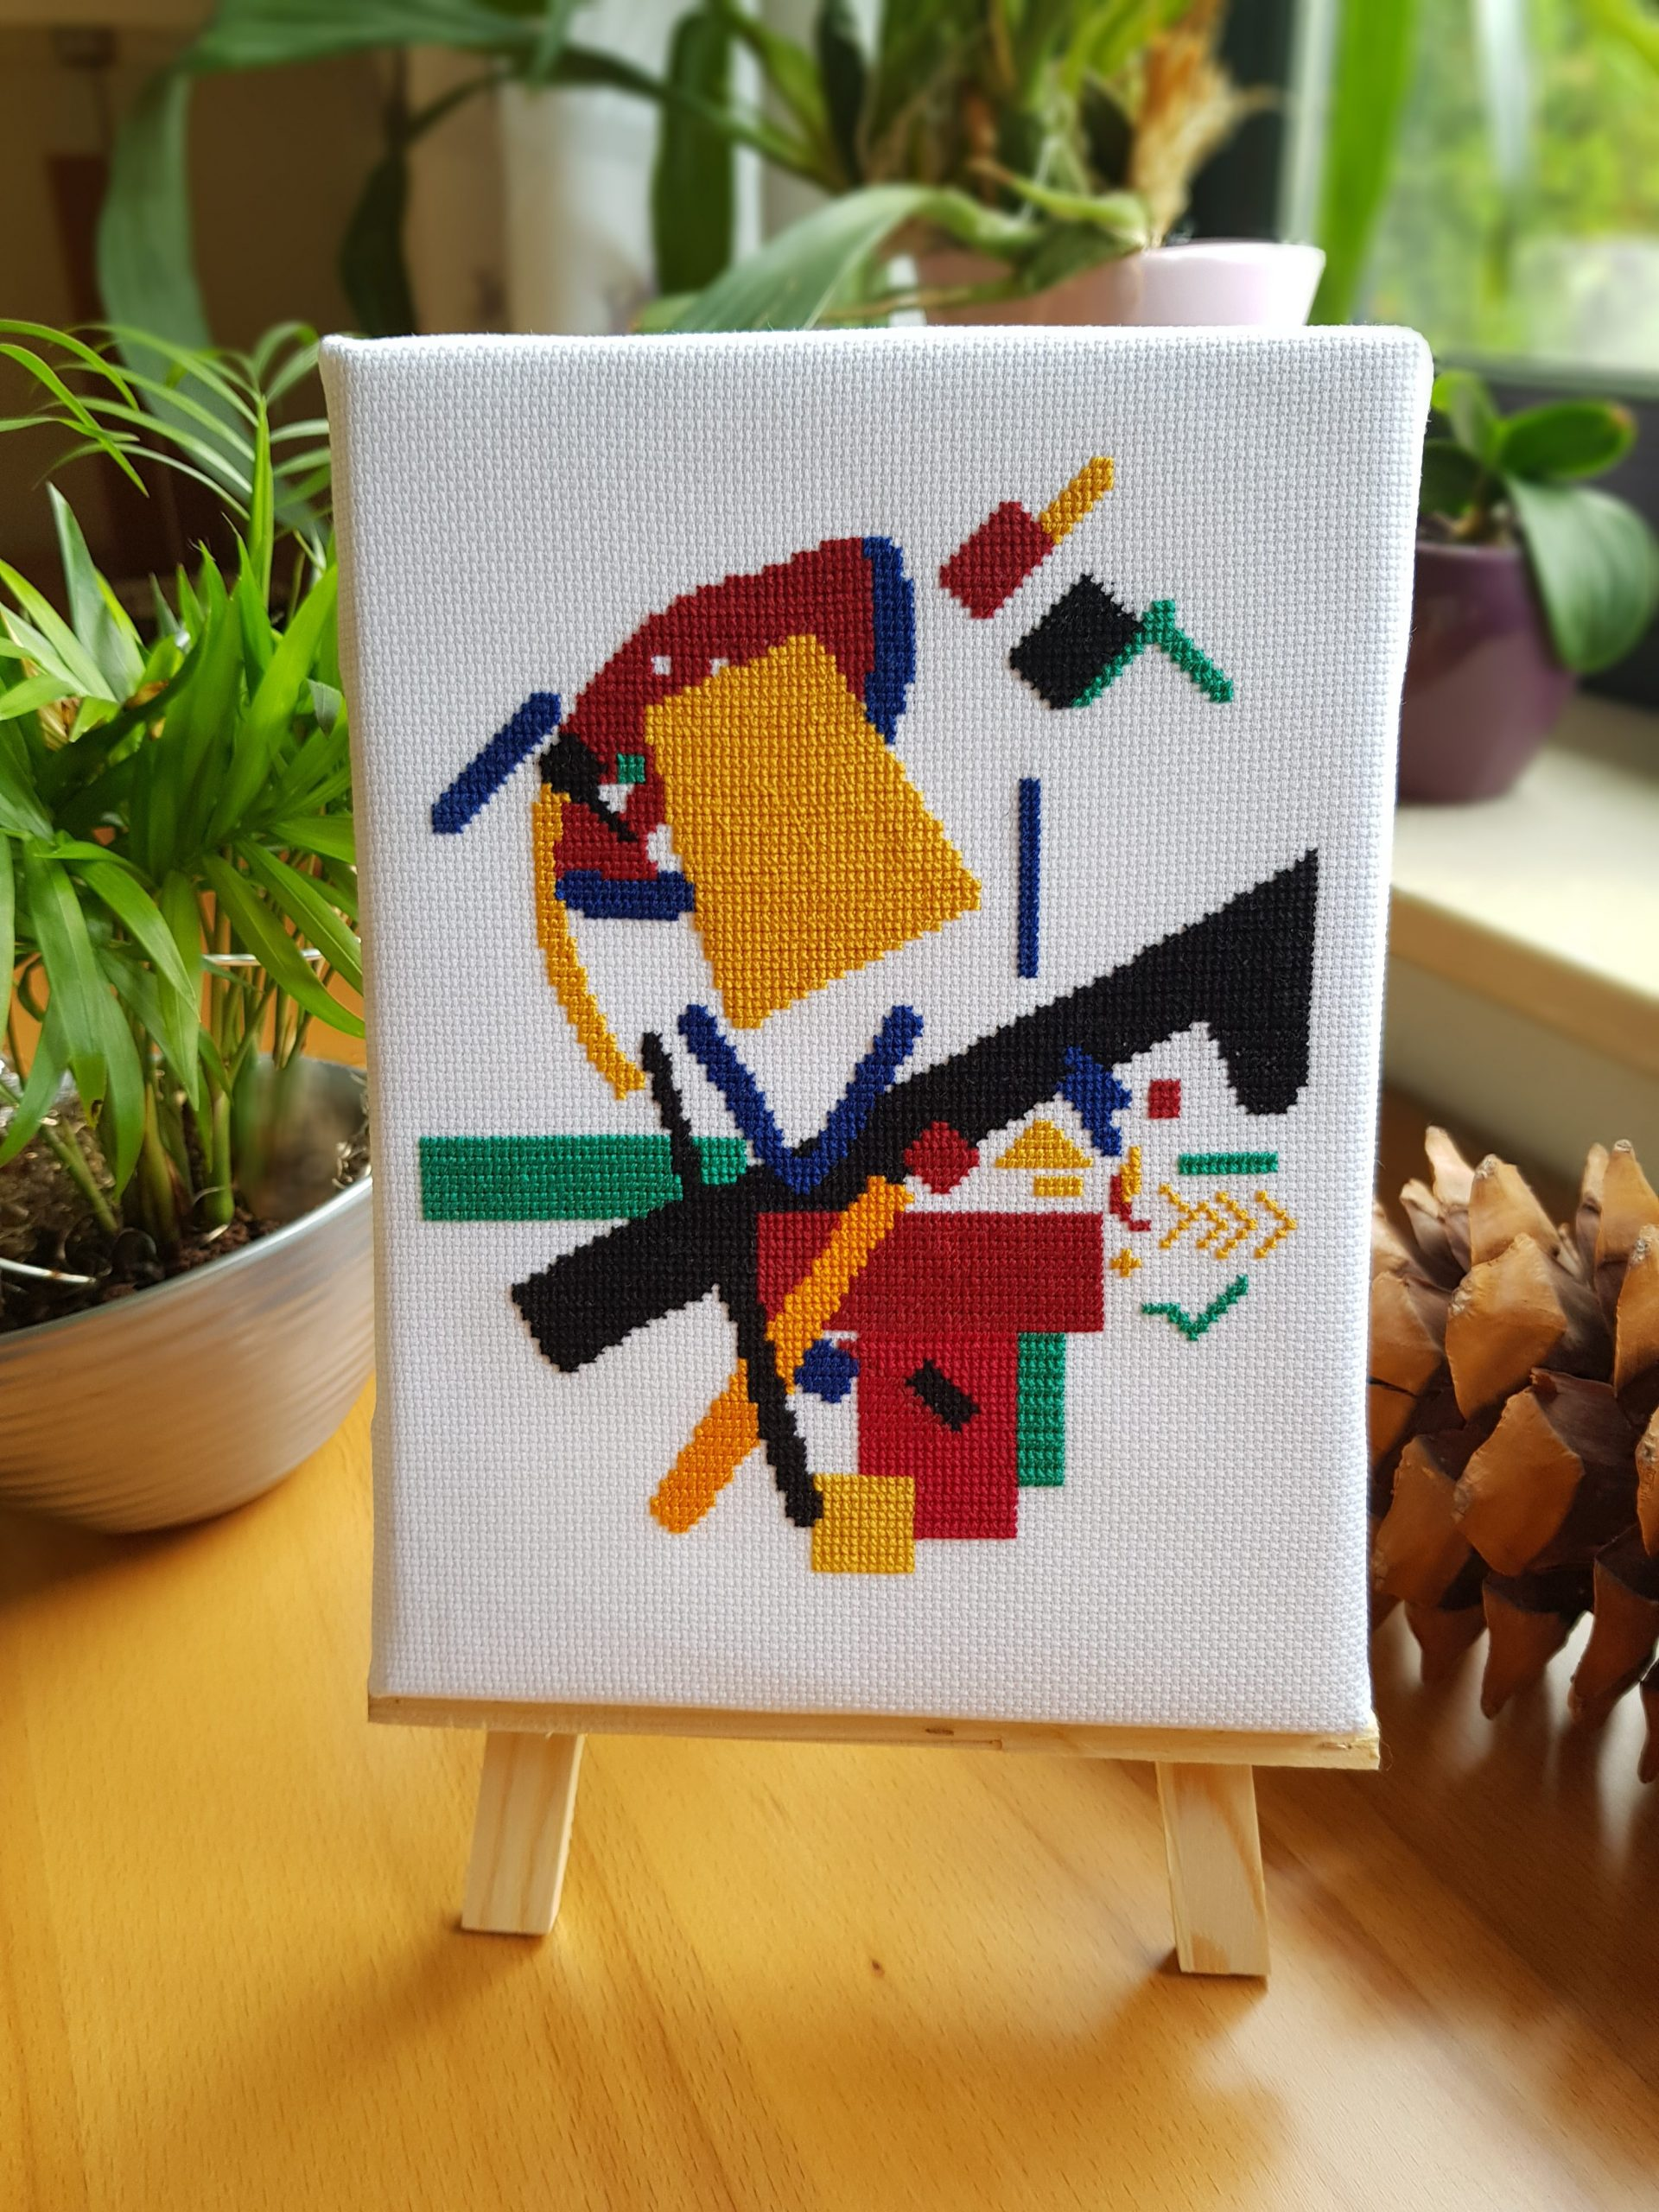 Stitched modern art – Abstract and Suprematism